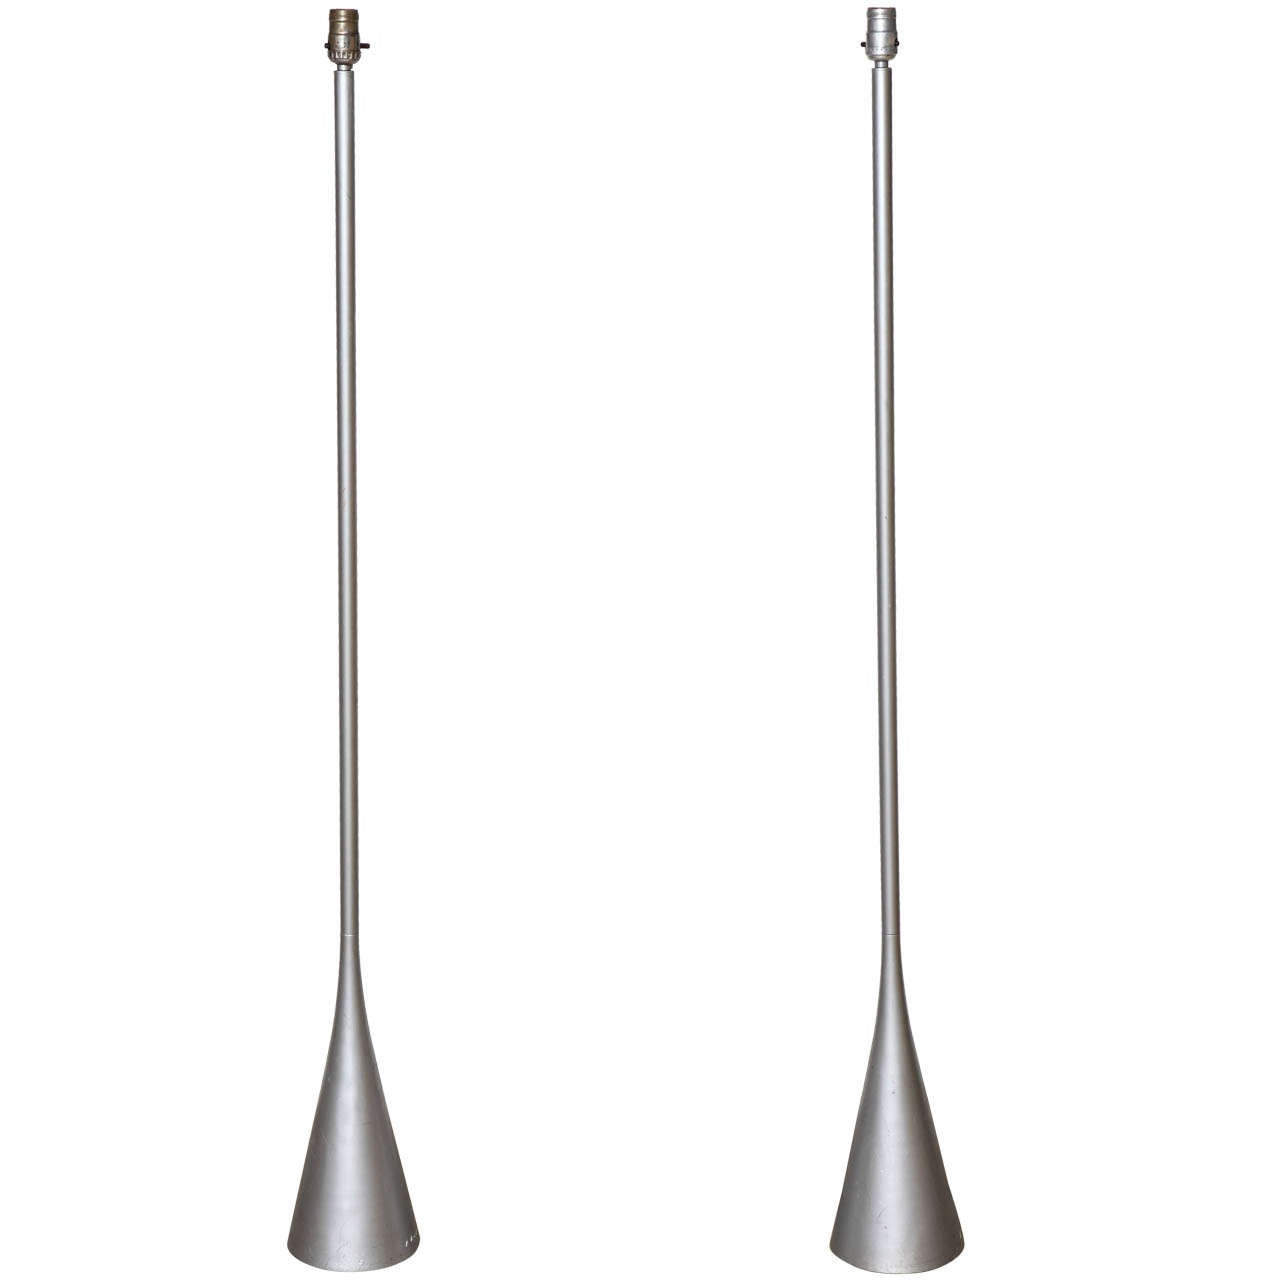 Pair of pascal mourgue for ligne roset cast aluminum bedside floor pair of pascal mourgue for ligne roset cast aluminum bedside floor lamps for sale aloadofball Images